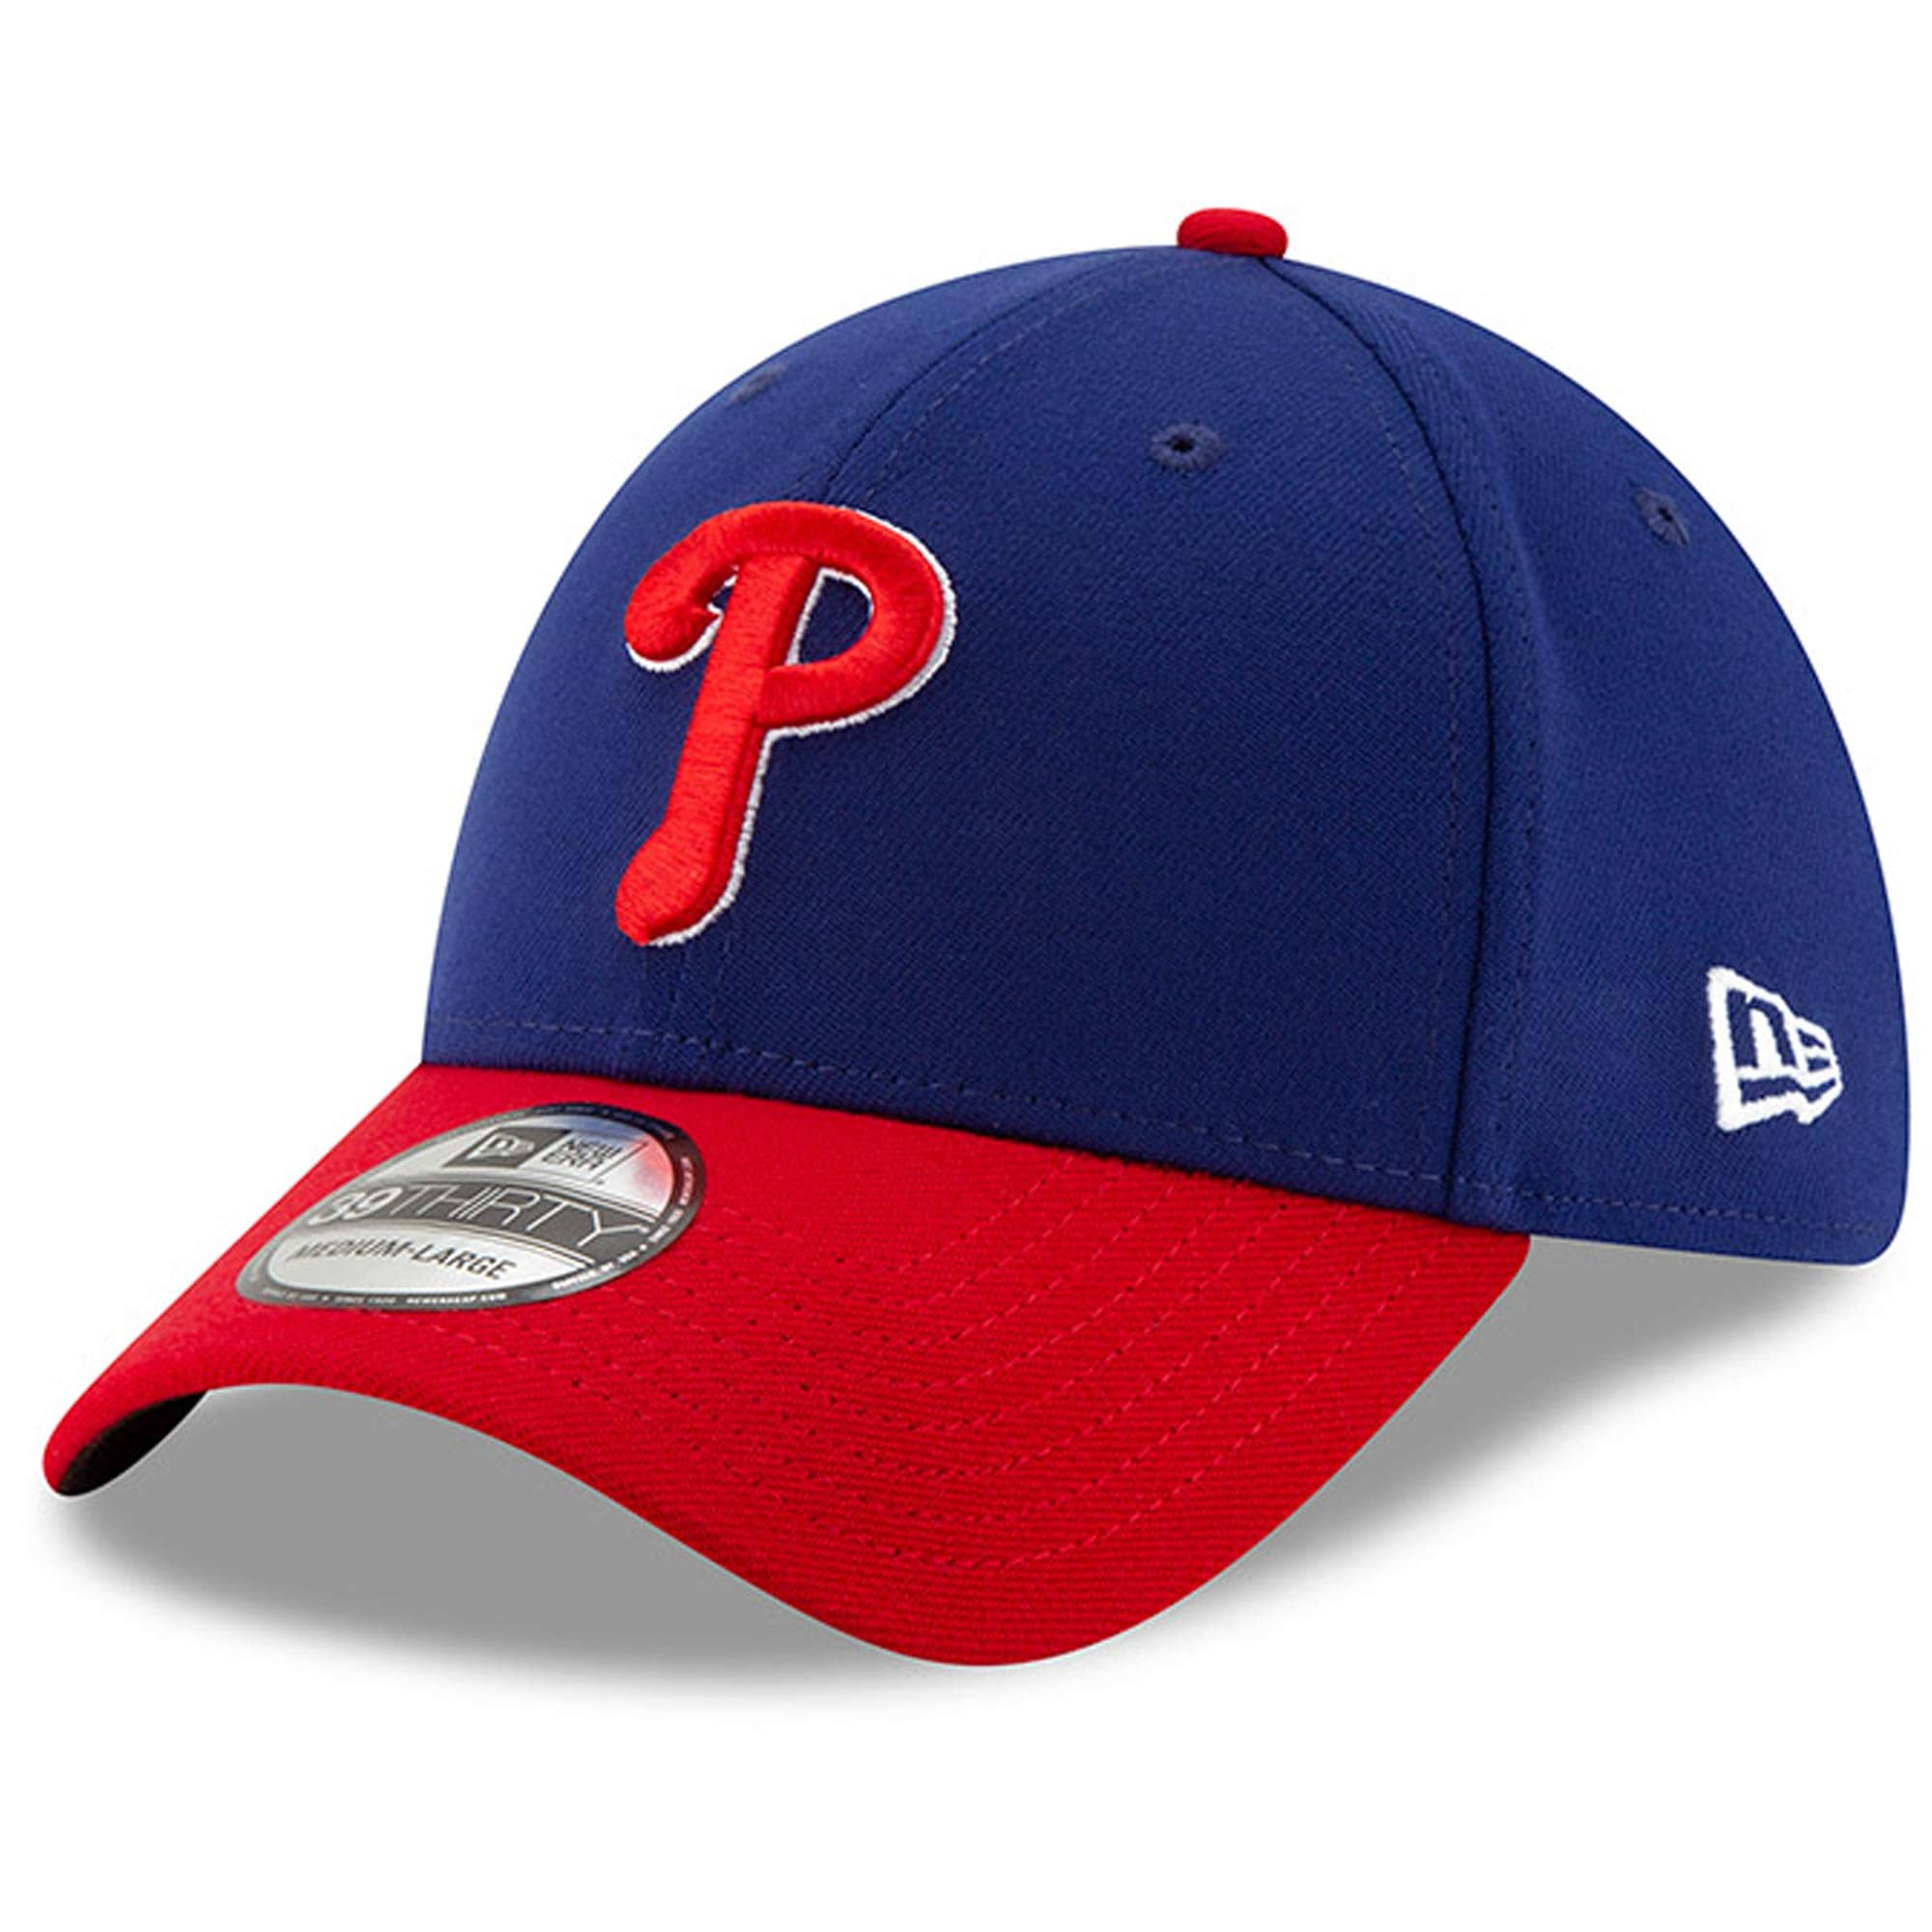 Philadelphia Phillies New Era Alternate Team Classic 39THIRTY Flex Hat - Royal/Red